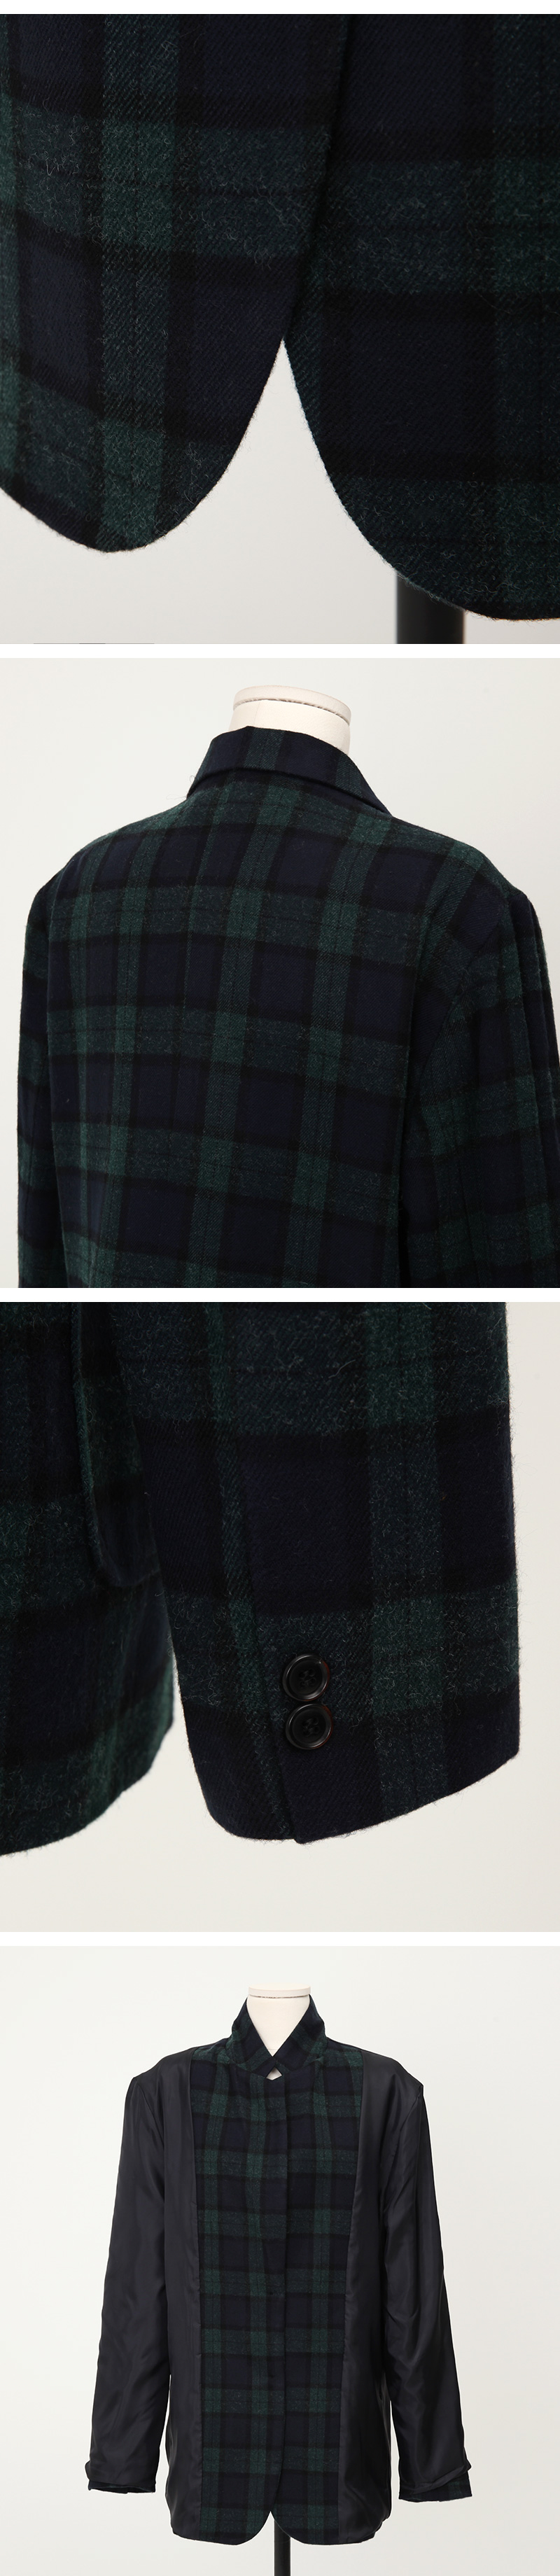 Gent wool check jacket_Y (size : free)